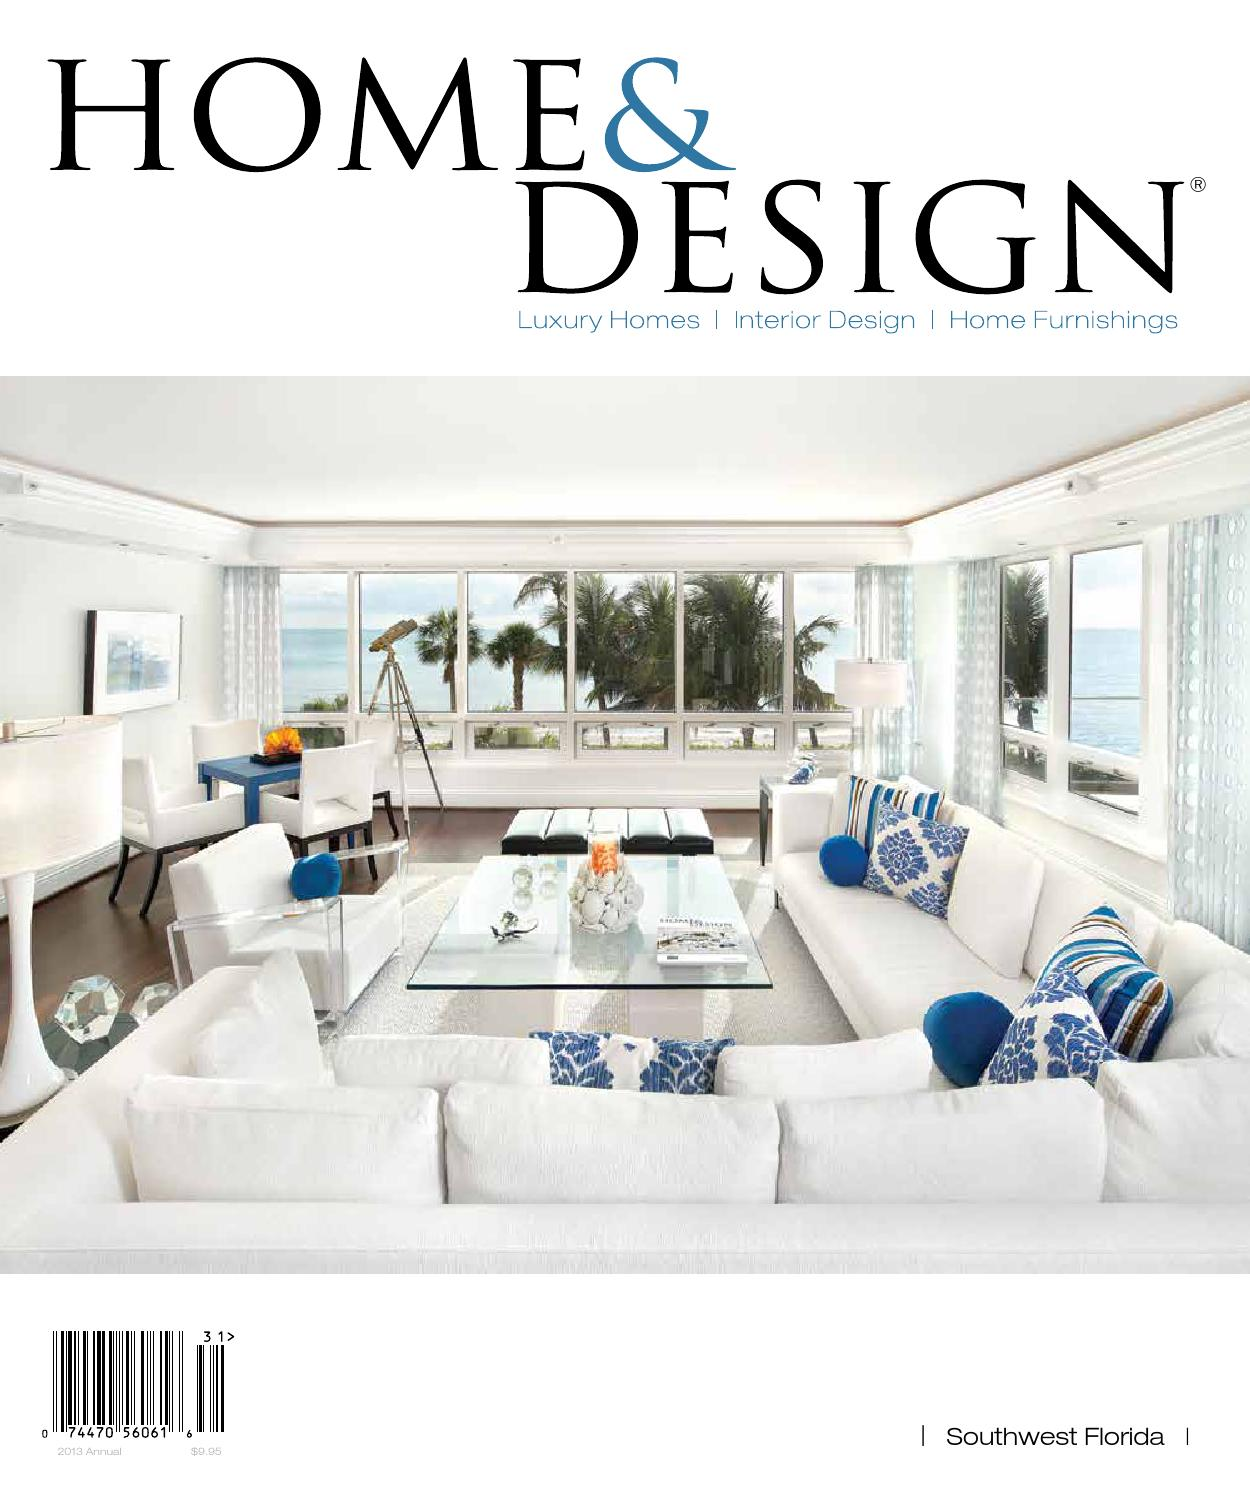 Home Design Magazine Annual Resource Guide 2013 By Anthony Spano Issuu